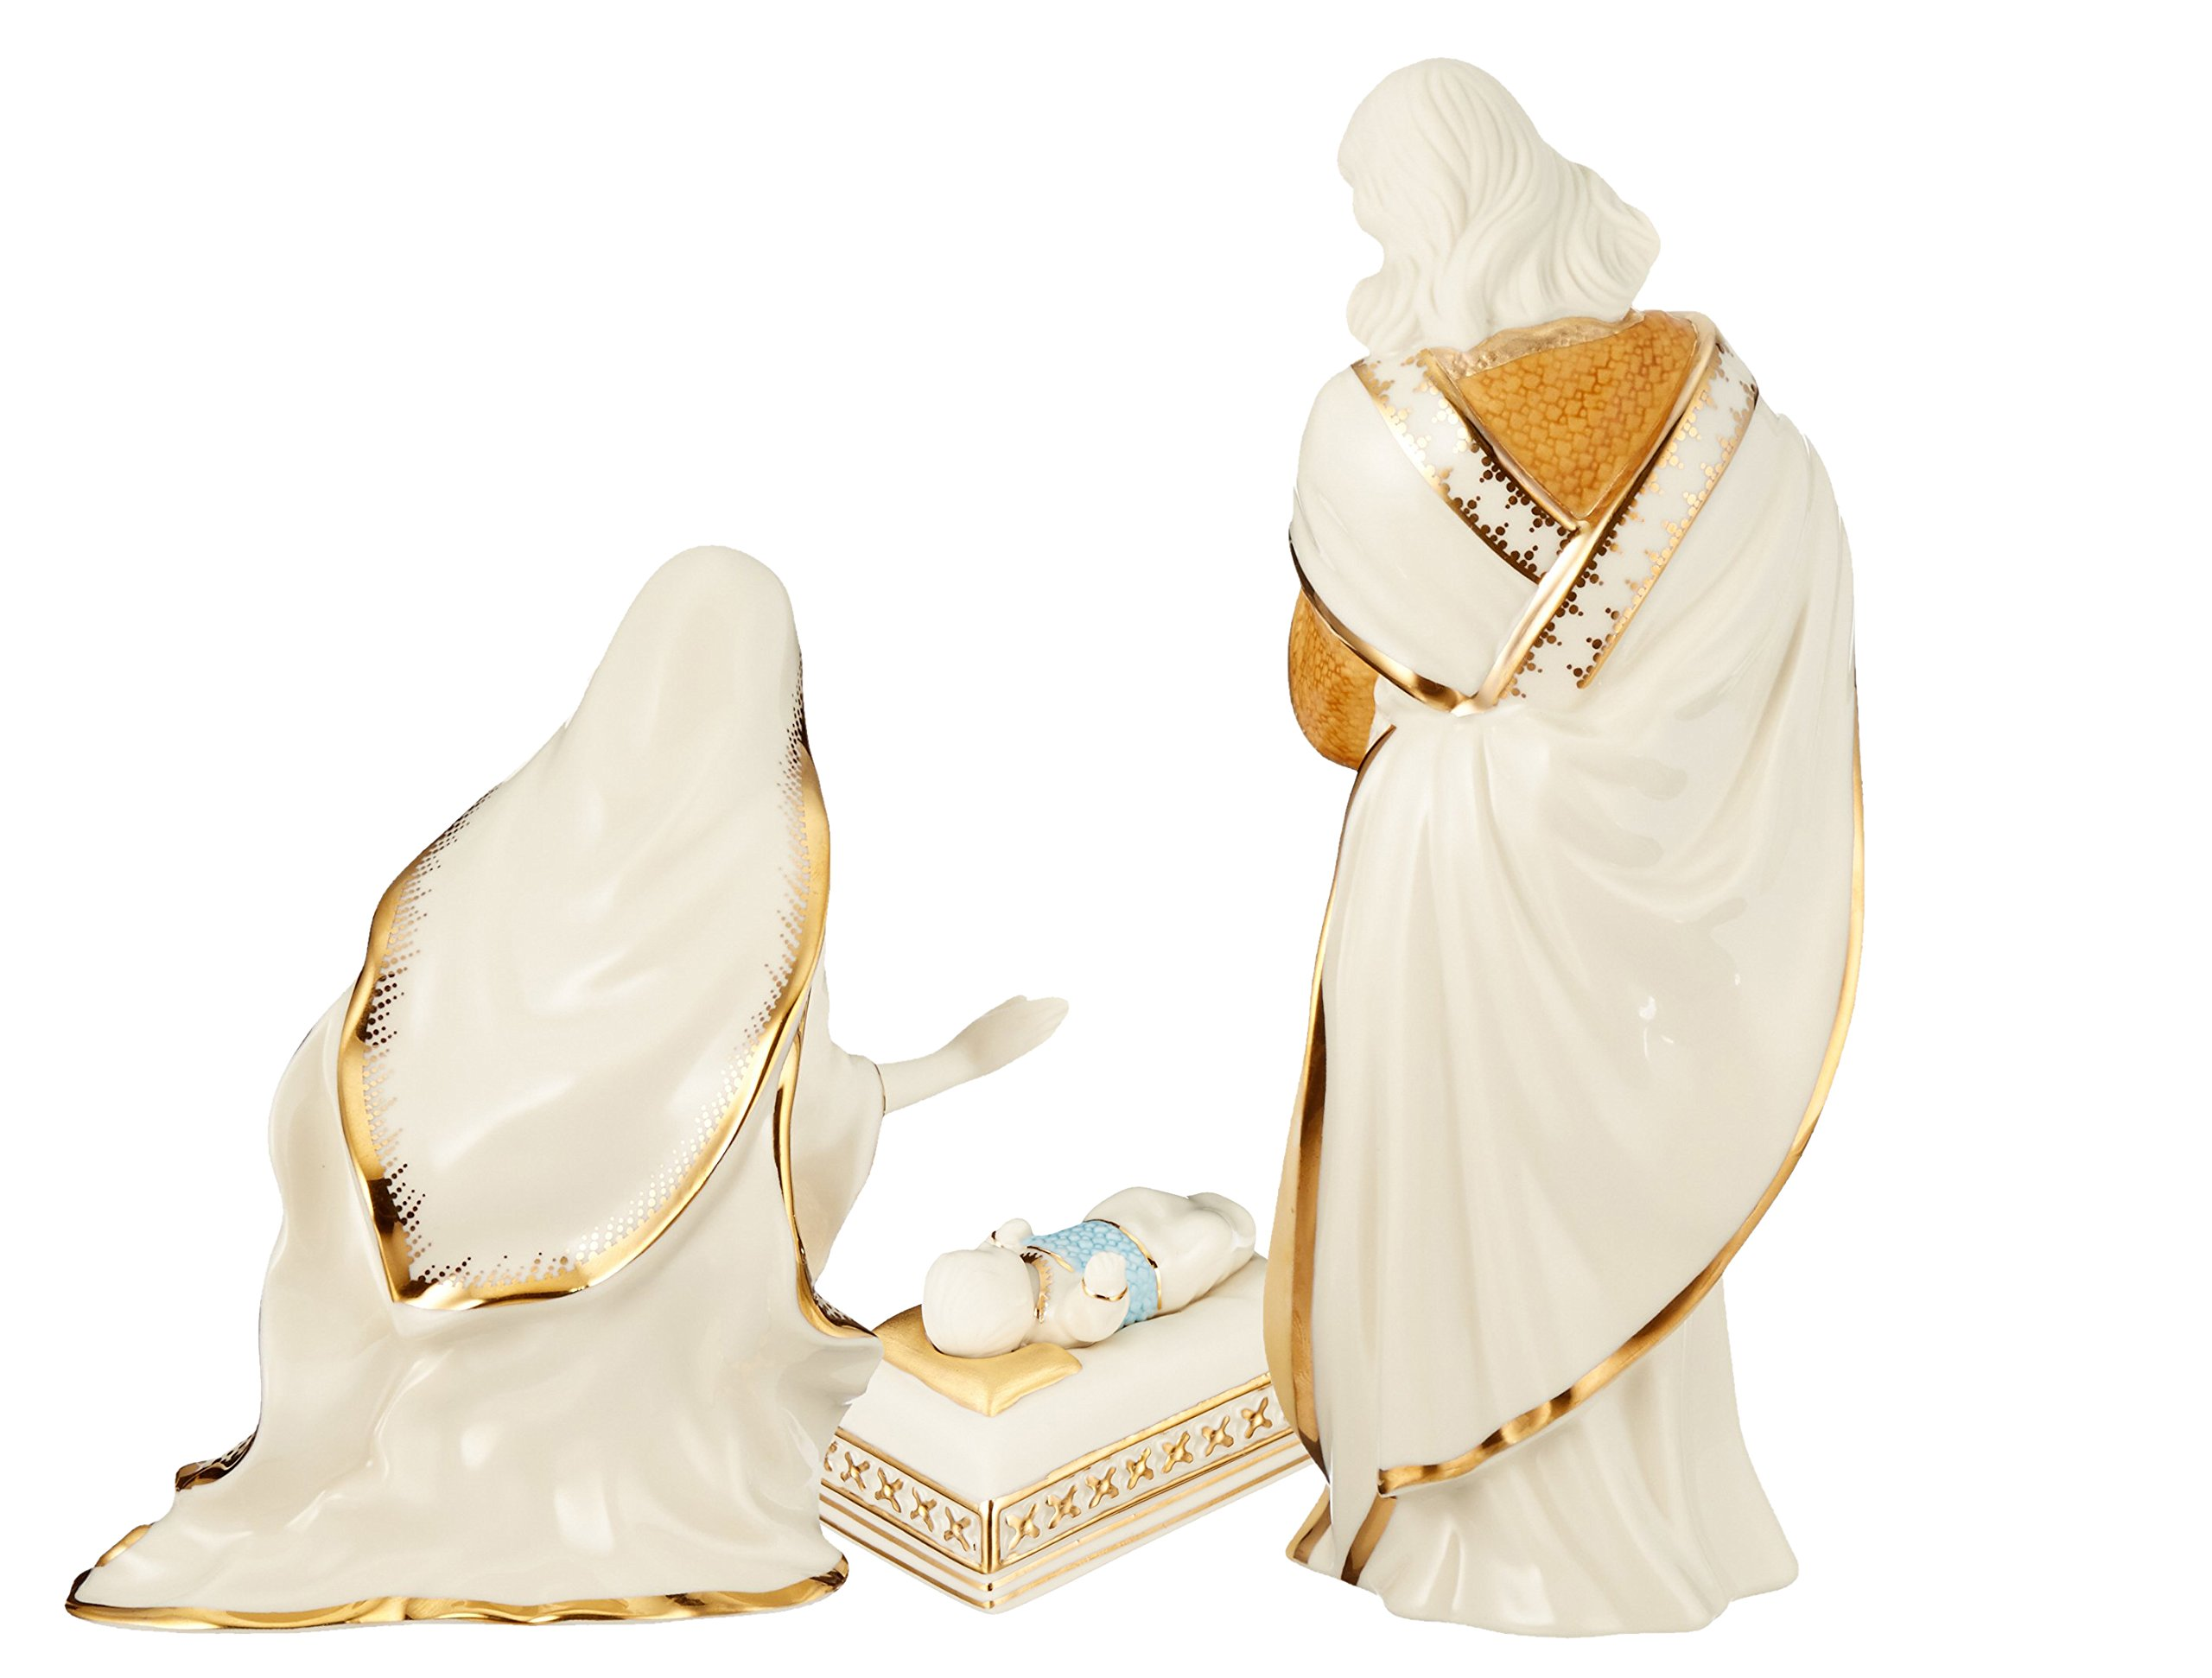 Lenox First Blessing Nativity The Holy Family, Set of 3 by Lenox (Image #4)